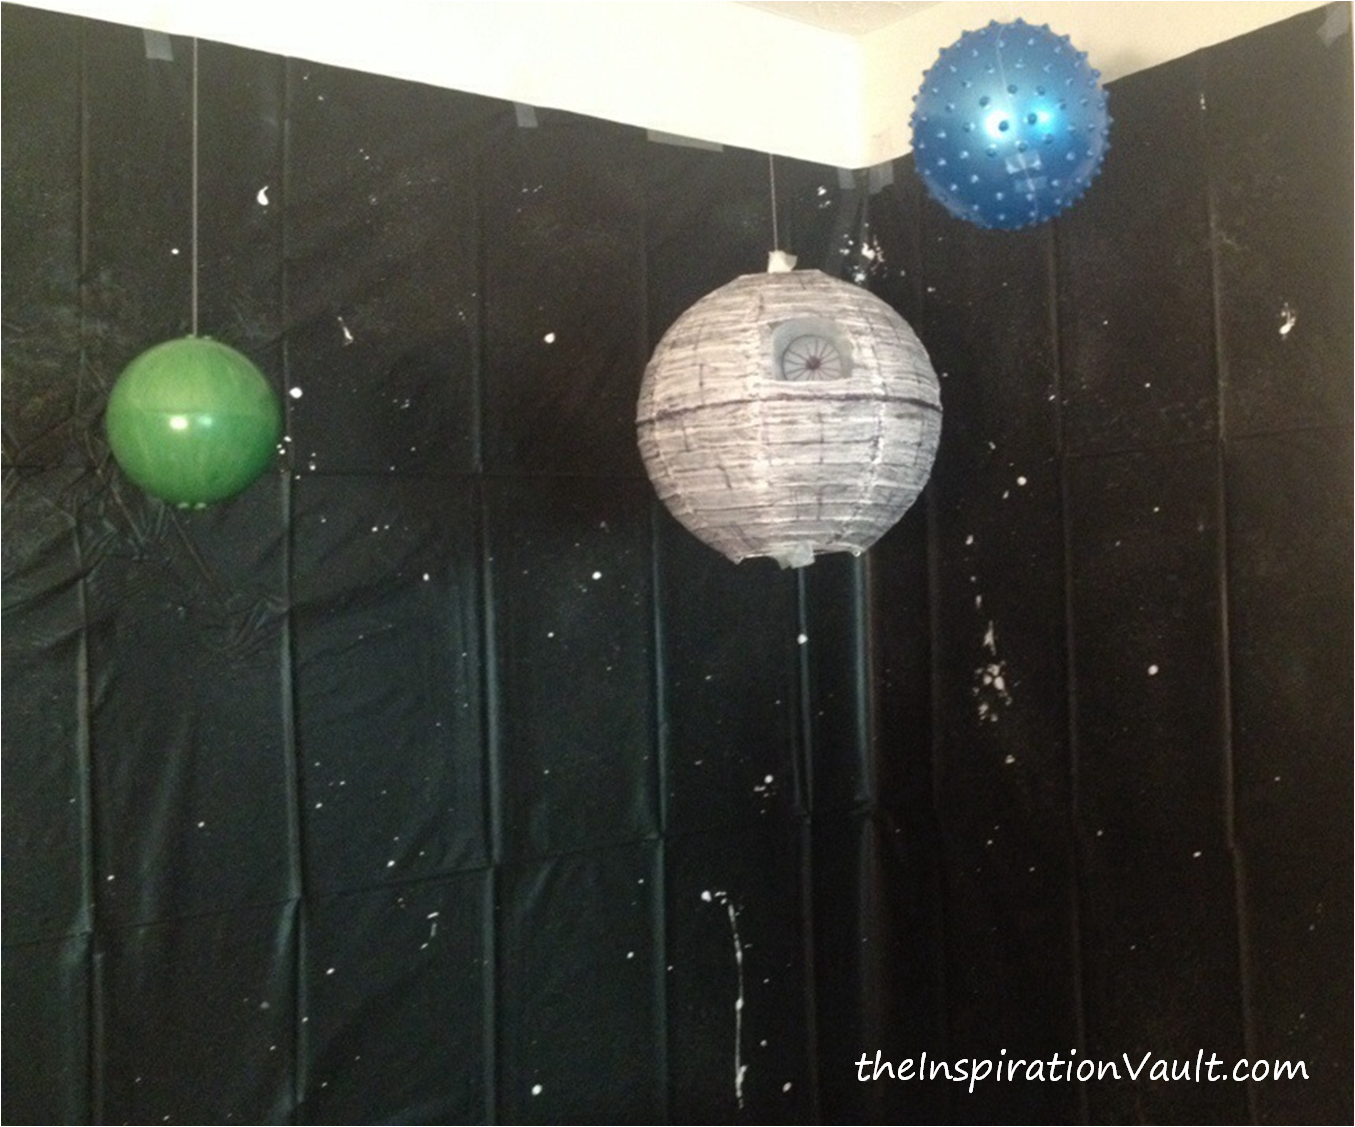 Star Wars Theme Party Star Wars Party Decorations Star Wars Party Star Wars Halloween